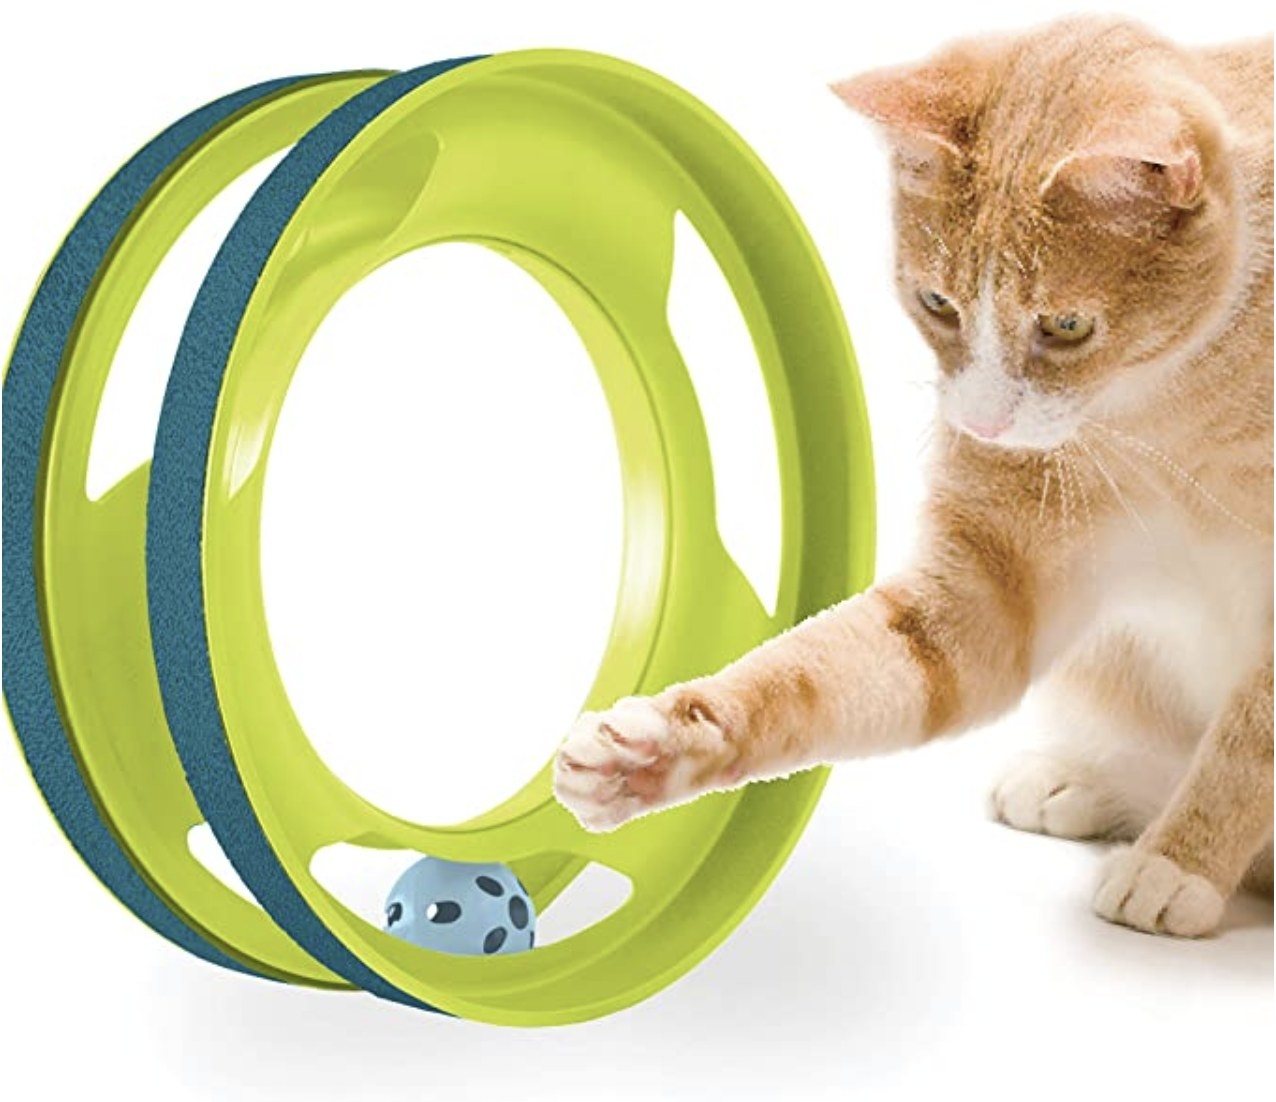 Cat playing with a circle track with a ball inside